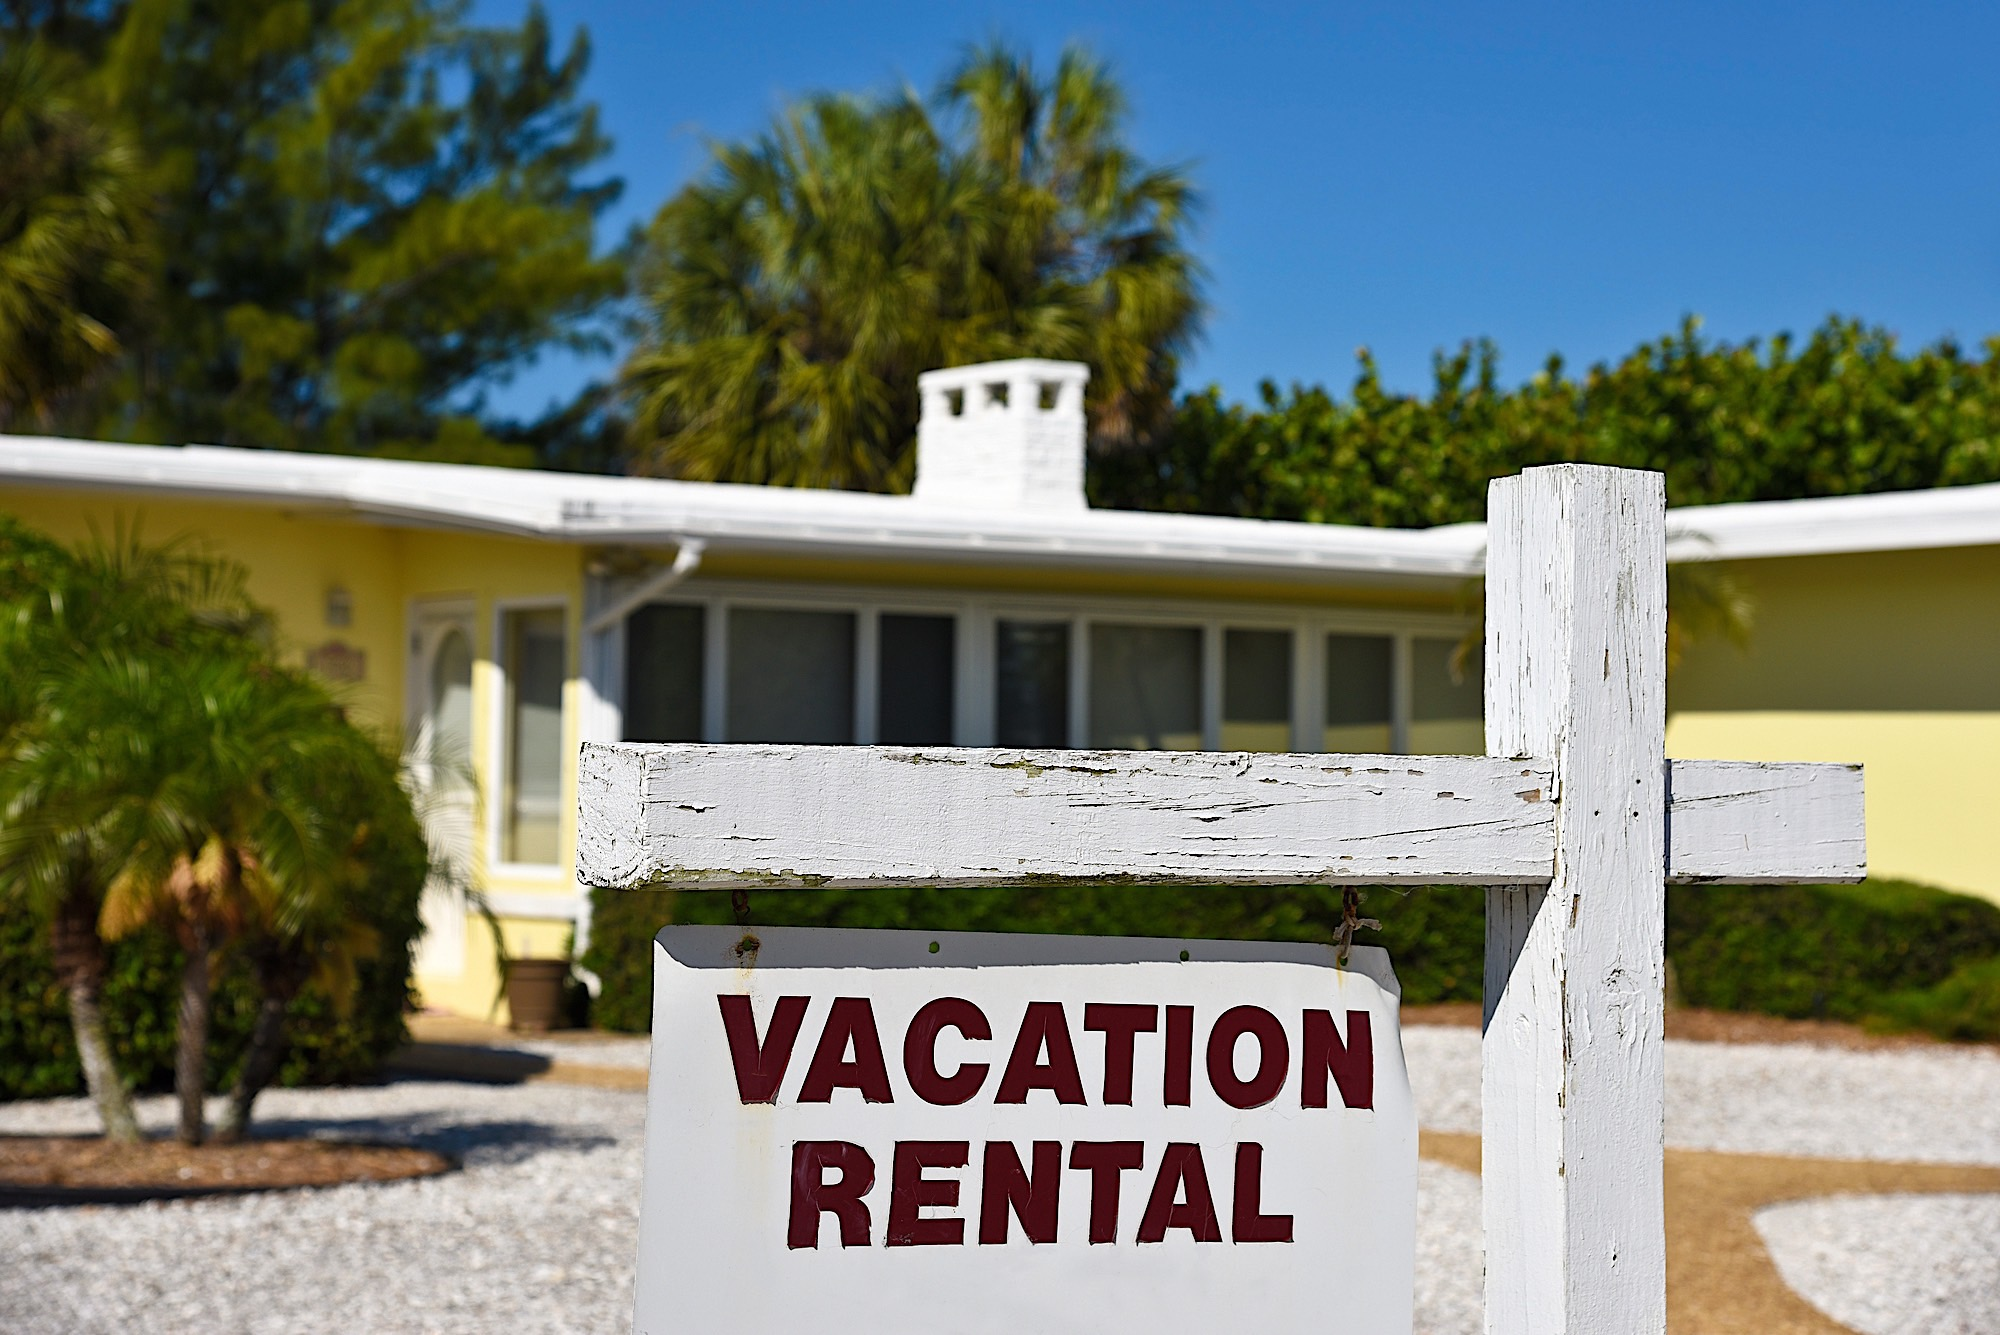 Vacation rental property